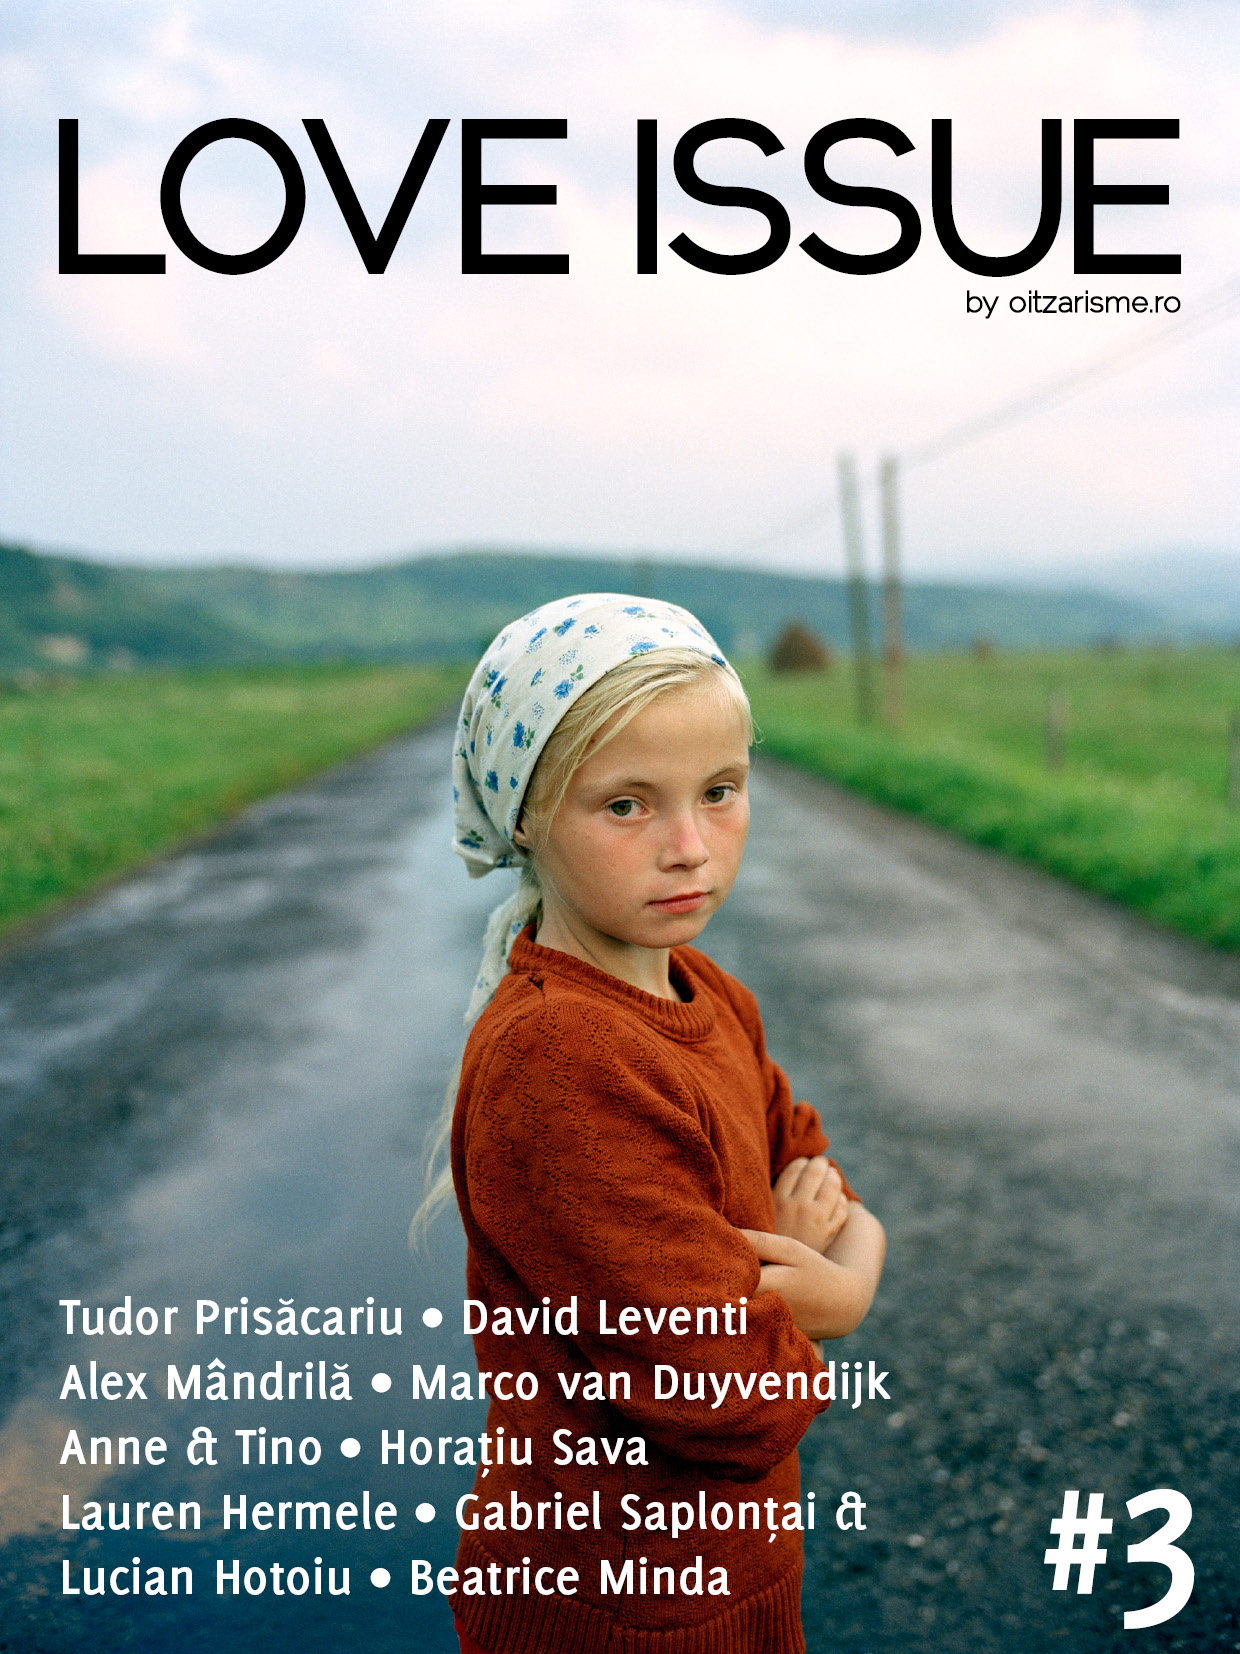 LoveIssue3